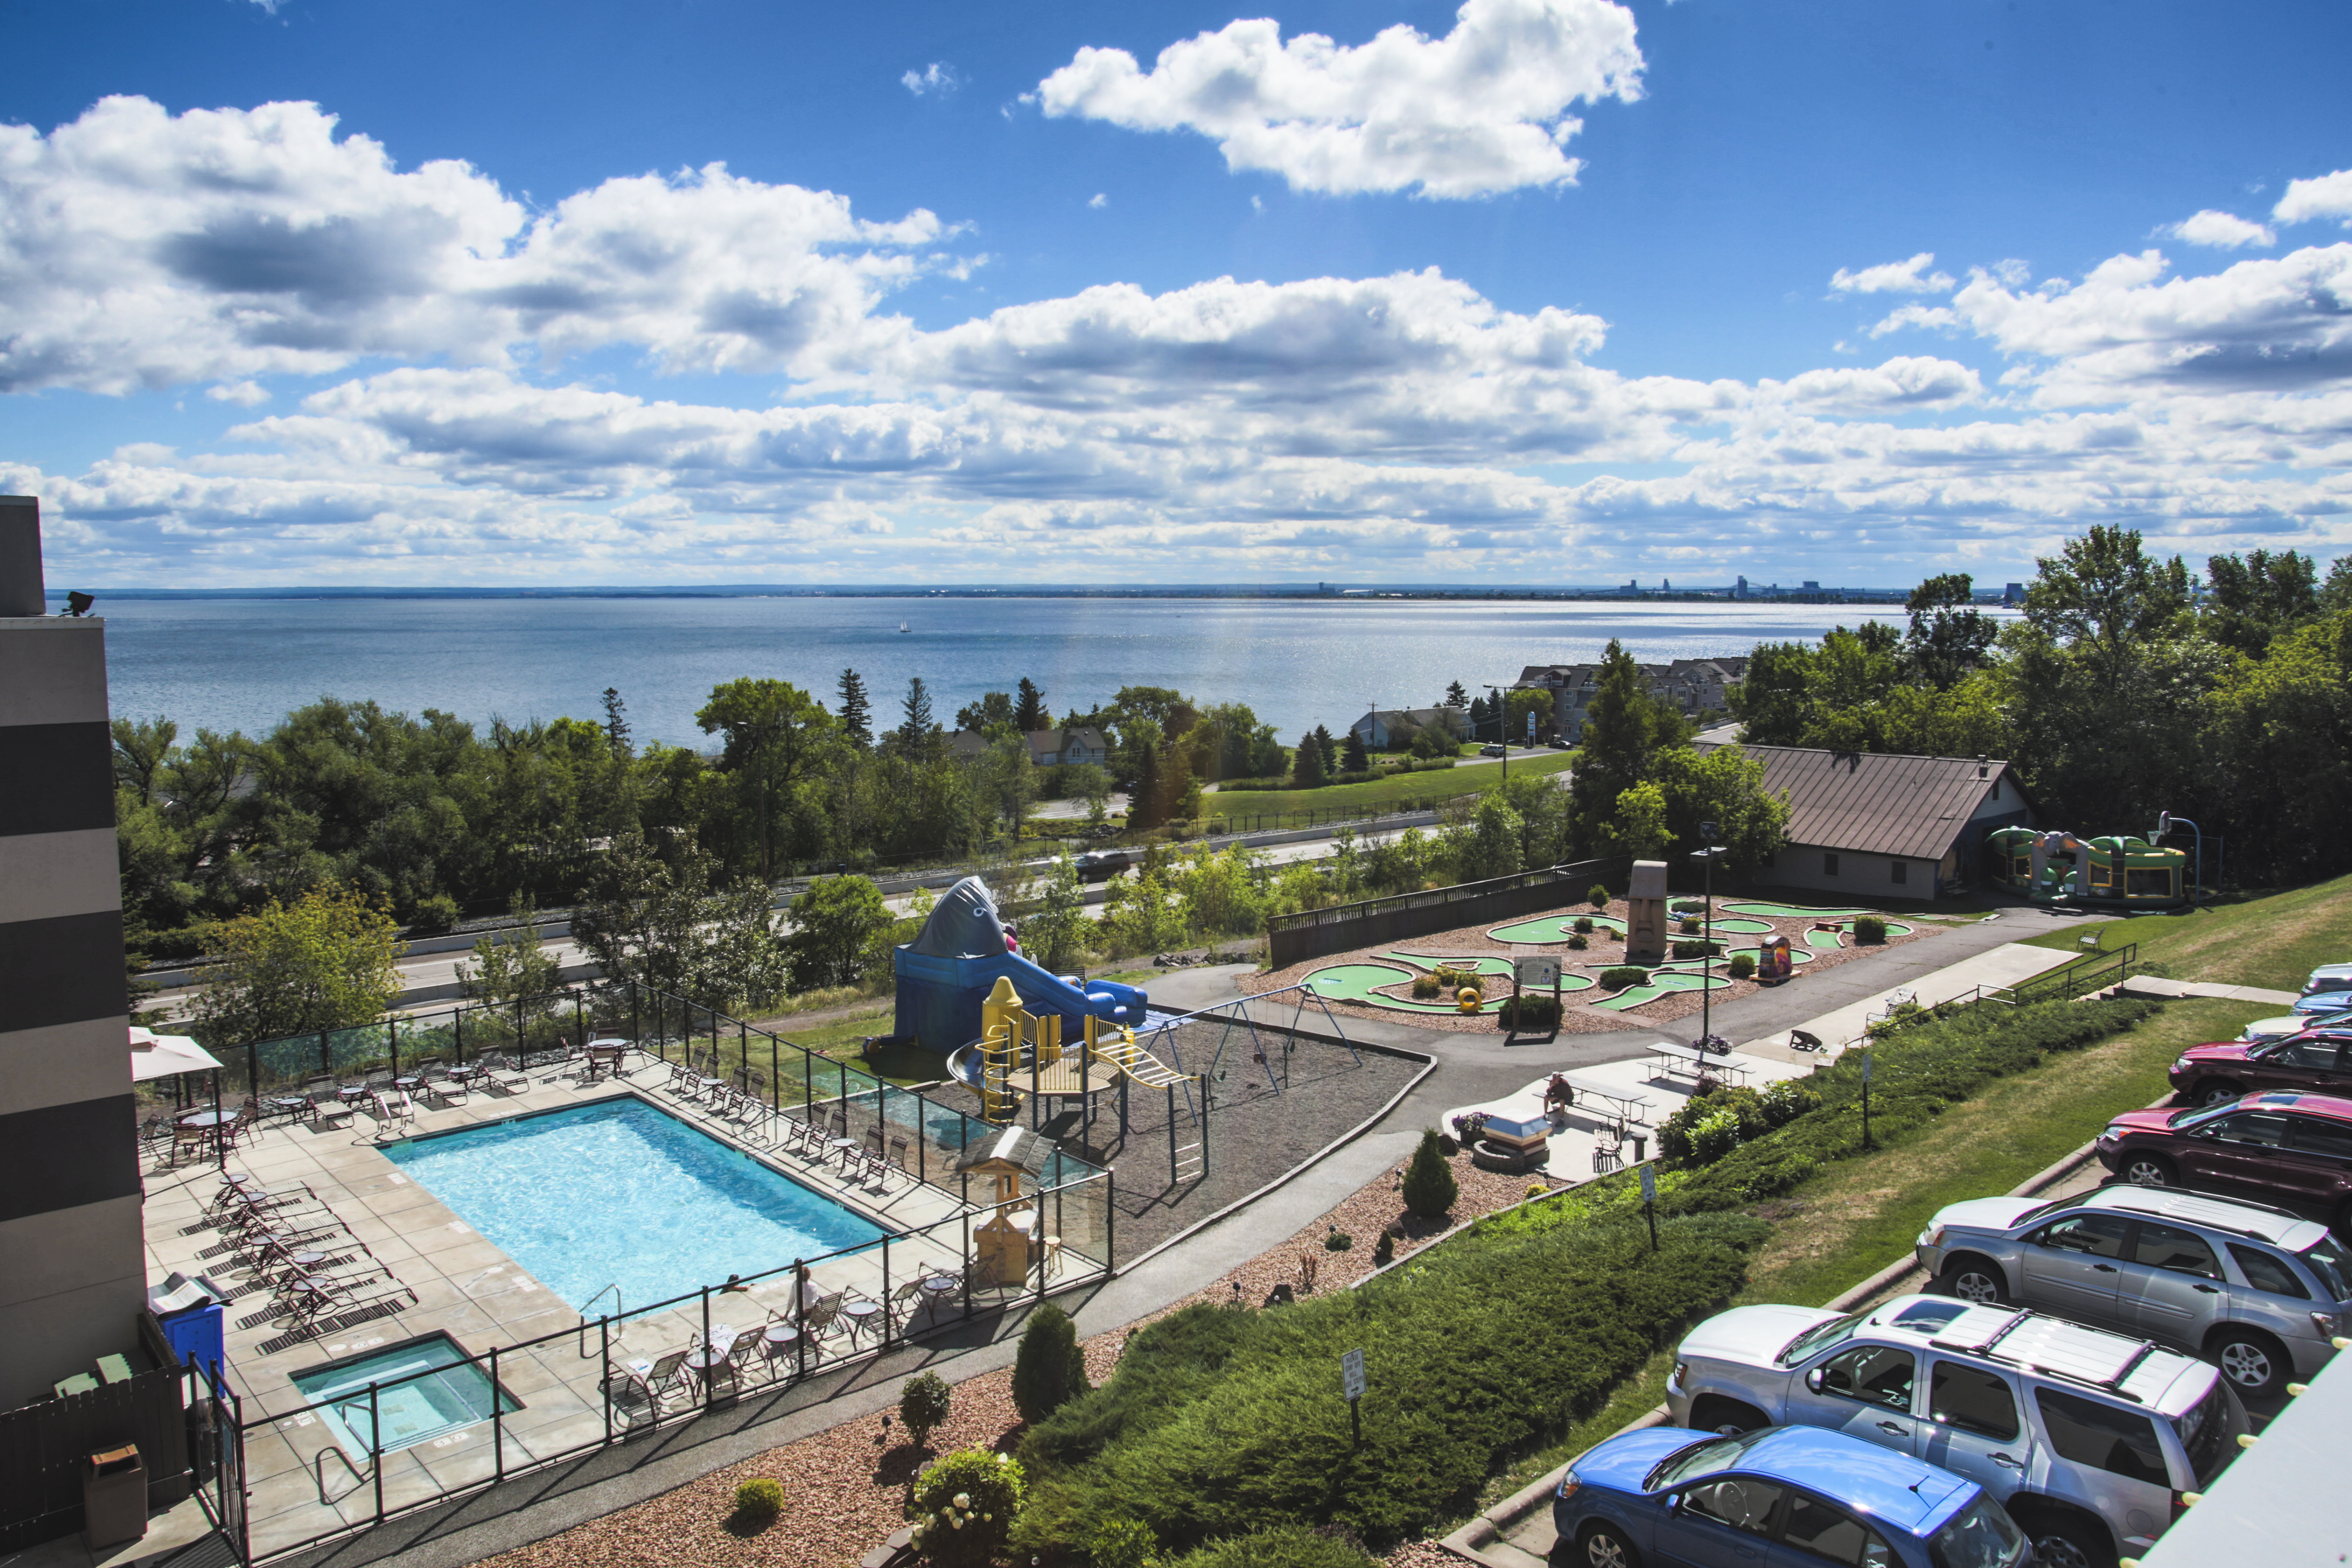 Duluth Images Crazy Gallery 5760x3840